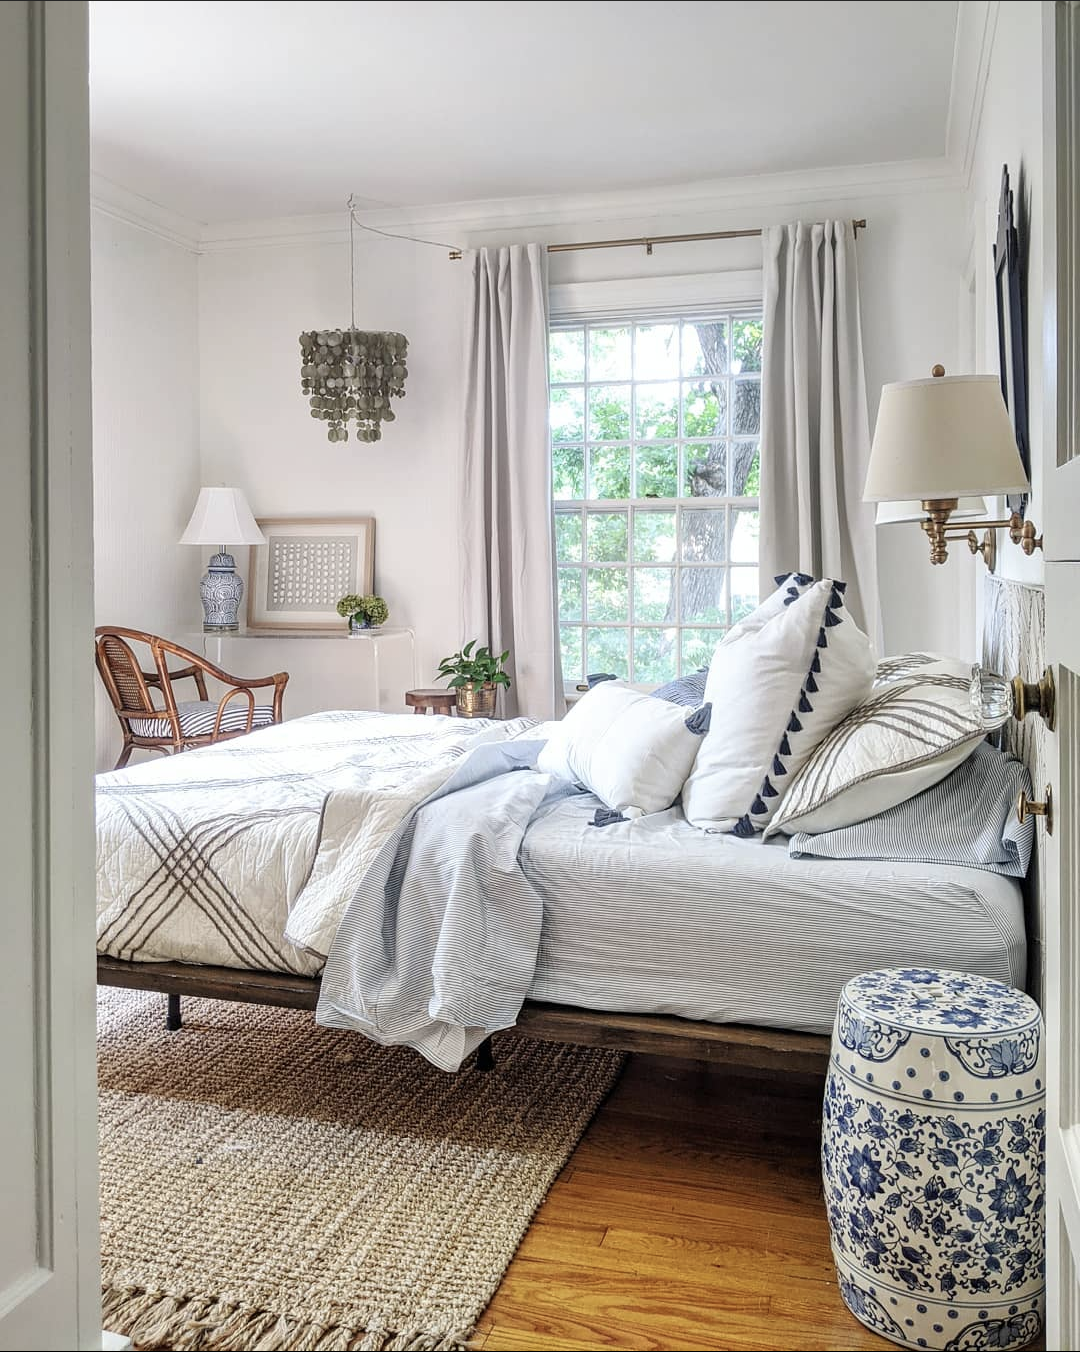 Hosting visitors for the first time in ages? Here's how to prep your guest room